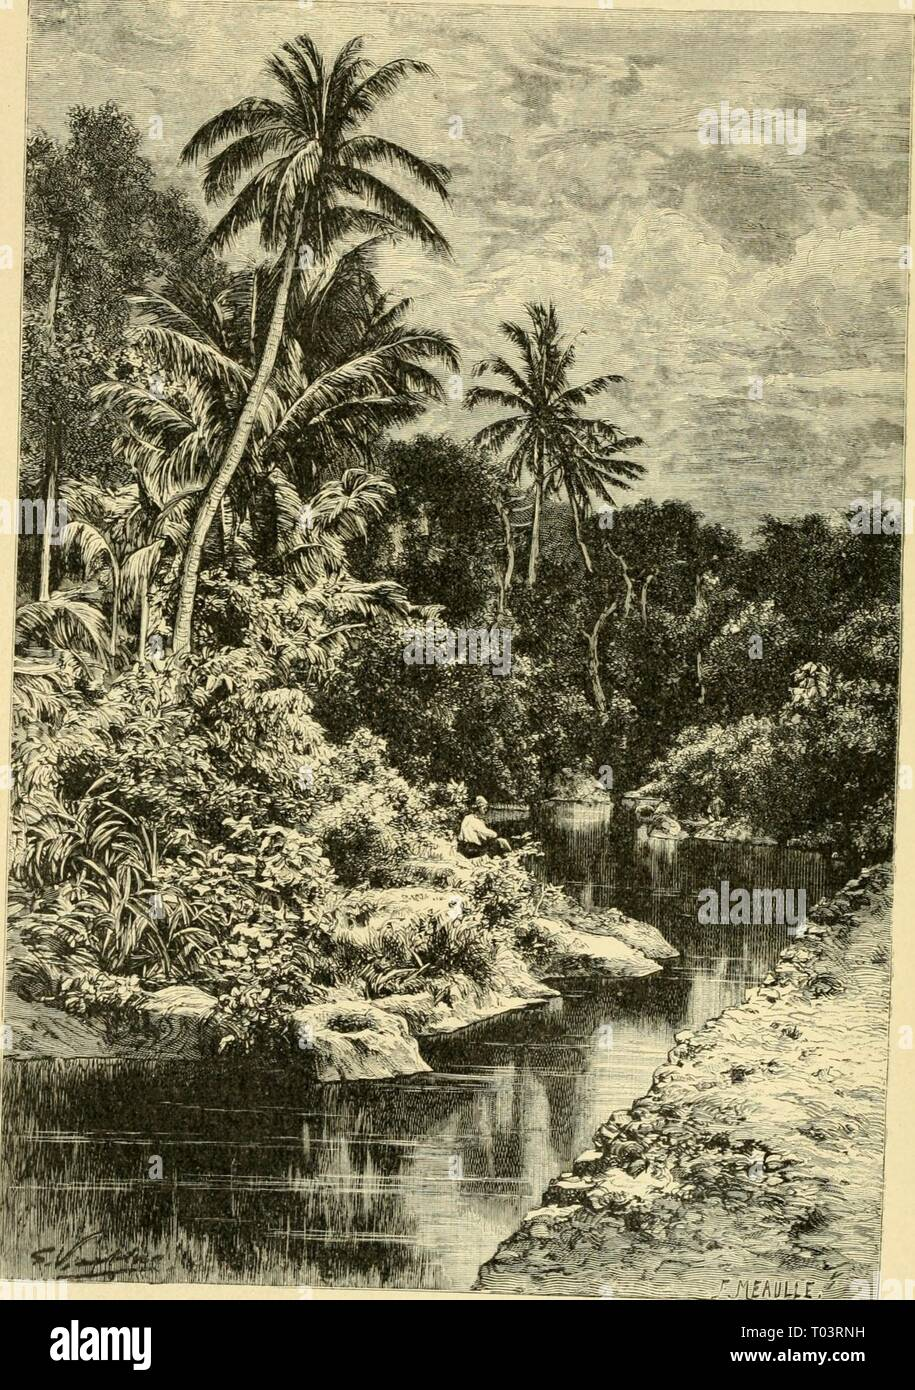 The earth and its inhabitants .. . earthitsinhabita00recl Year: 1890  212 AUSTEALASIA. floras and faunas. The side facing Australia abounds most in forms characteristic Fig. 88.—View taken in a Foeest neae Kupang, Timoe.    of that continent, while the opposite side belongs more to the animal and - Stock Image